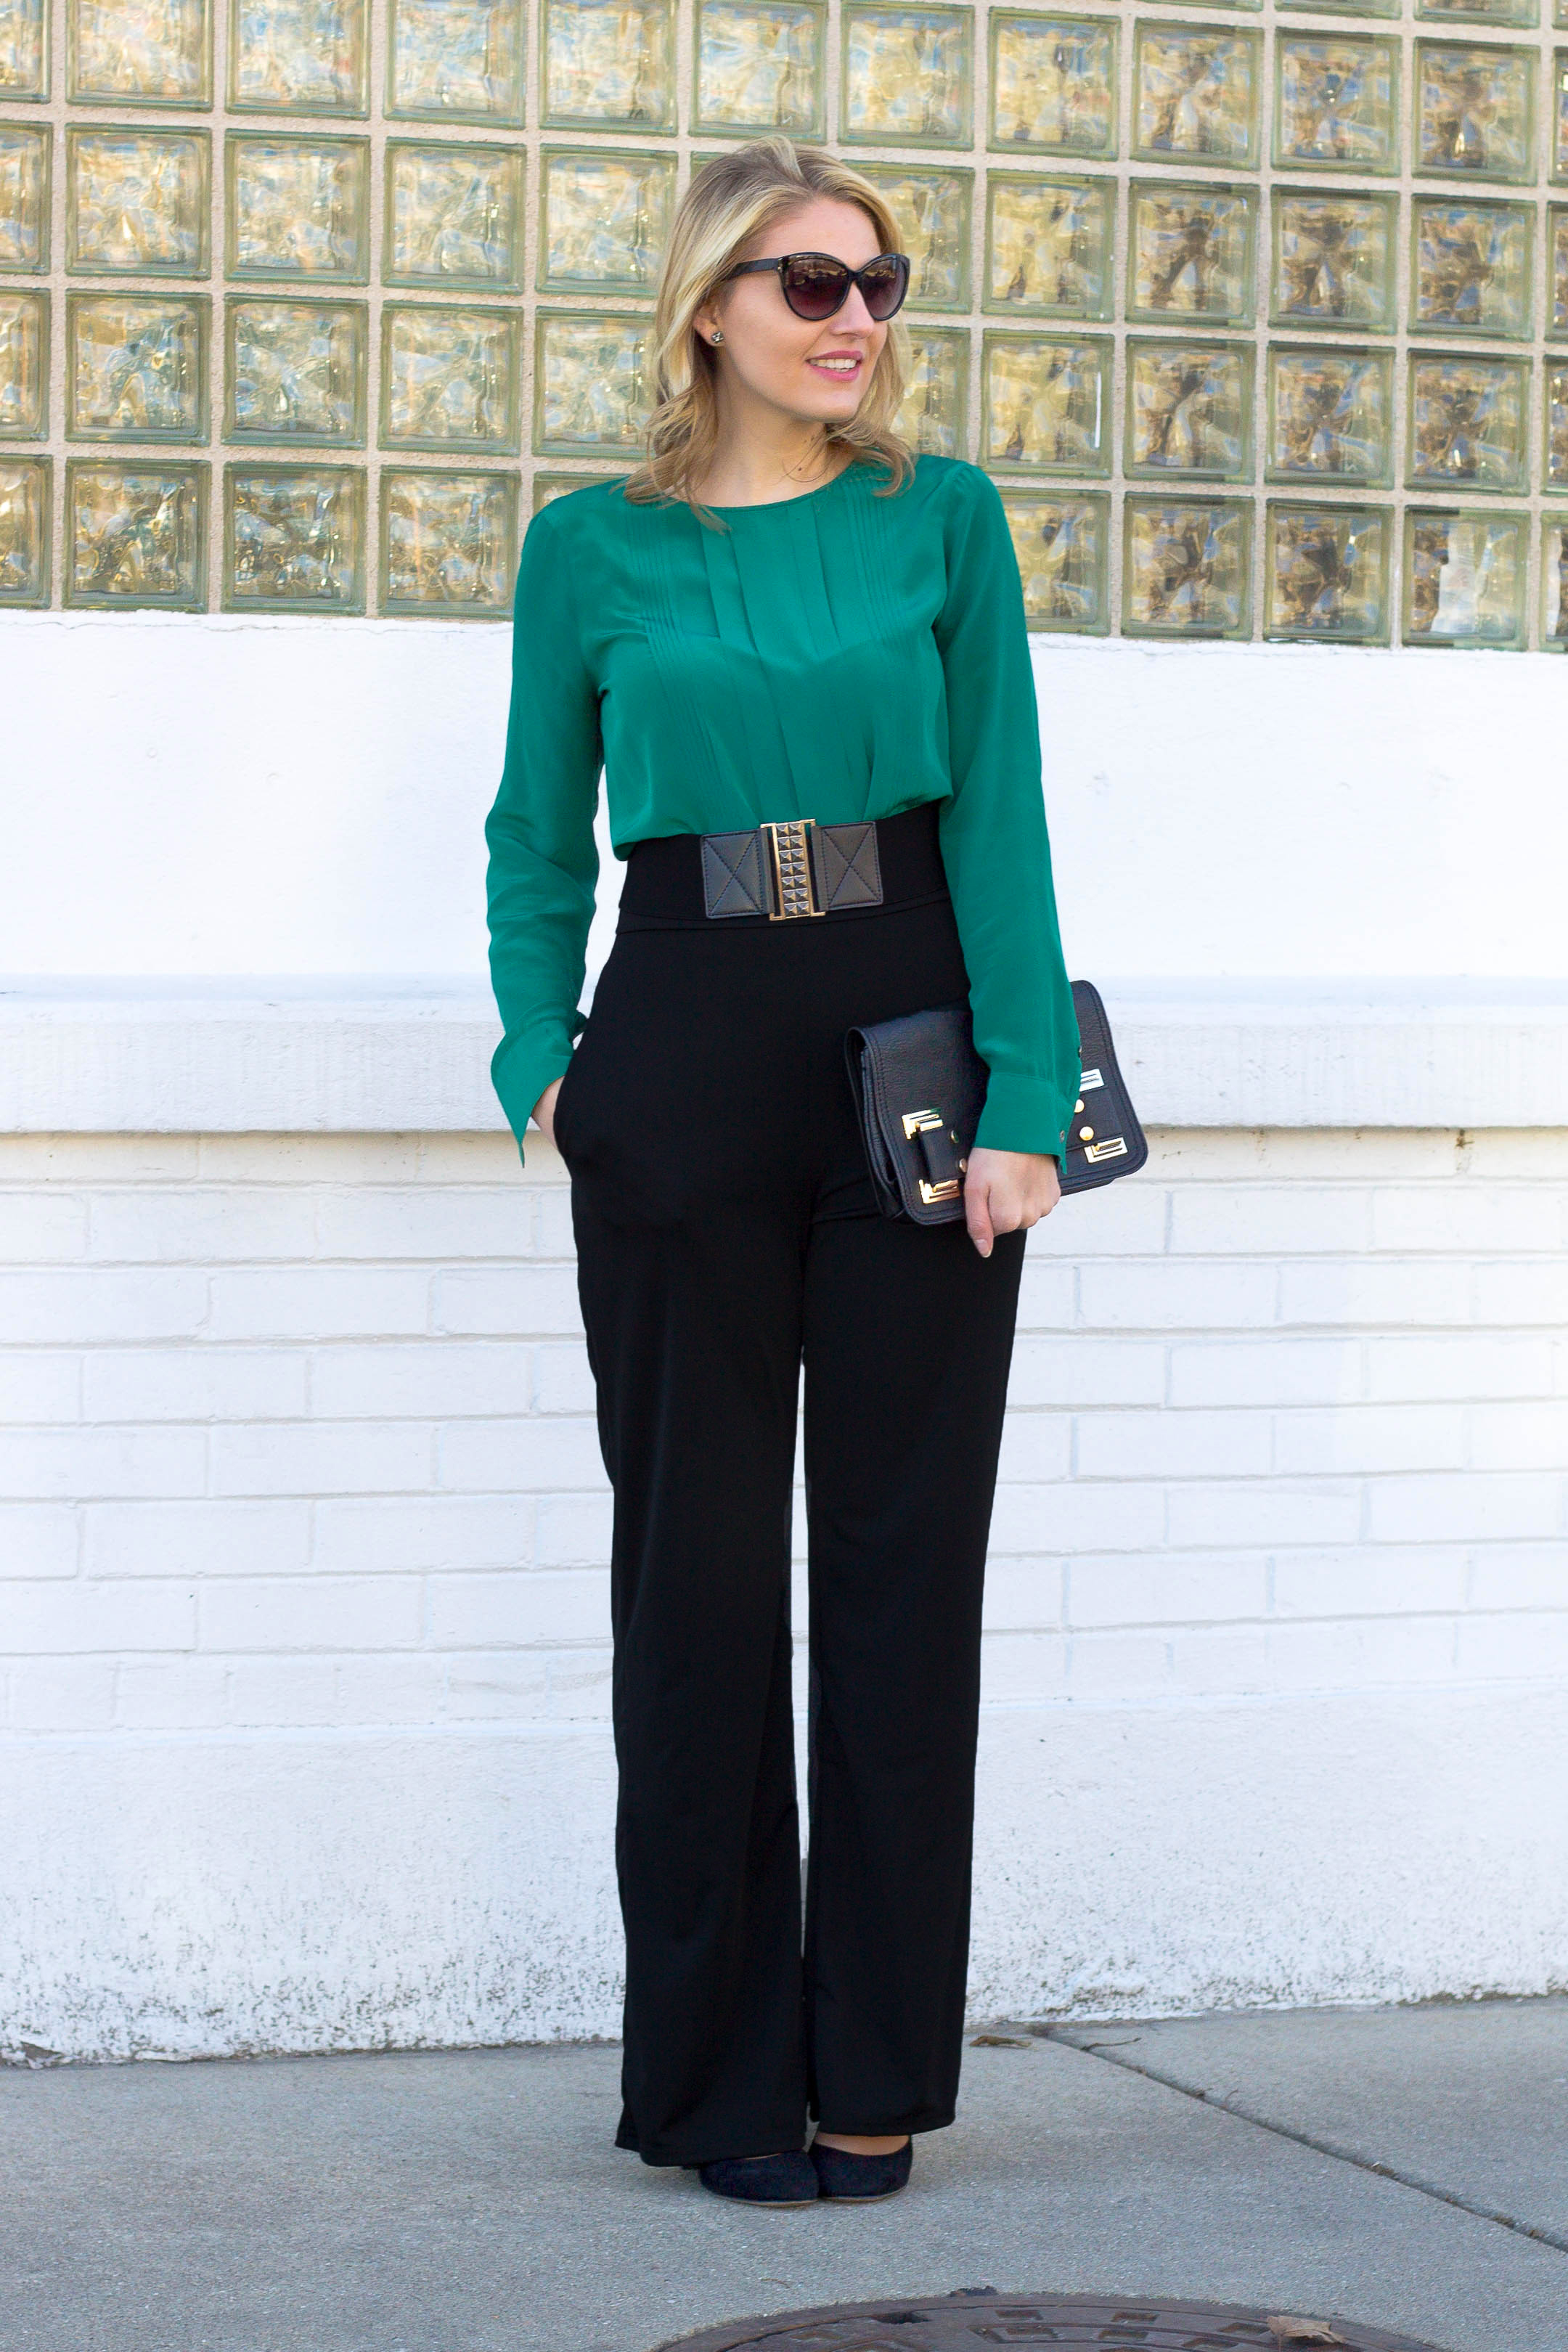 How to wear high waisted pants to the office